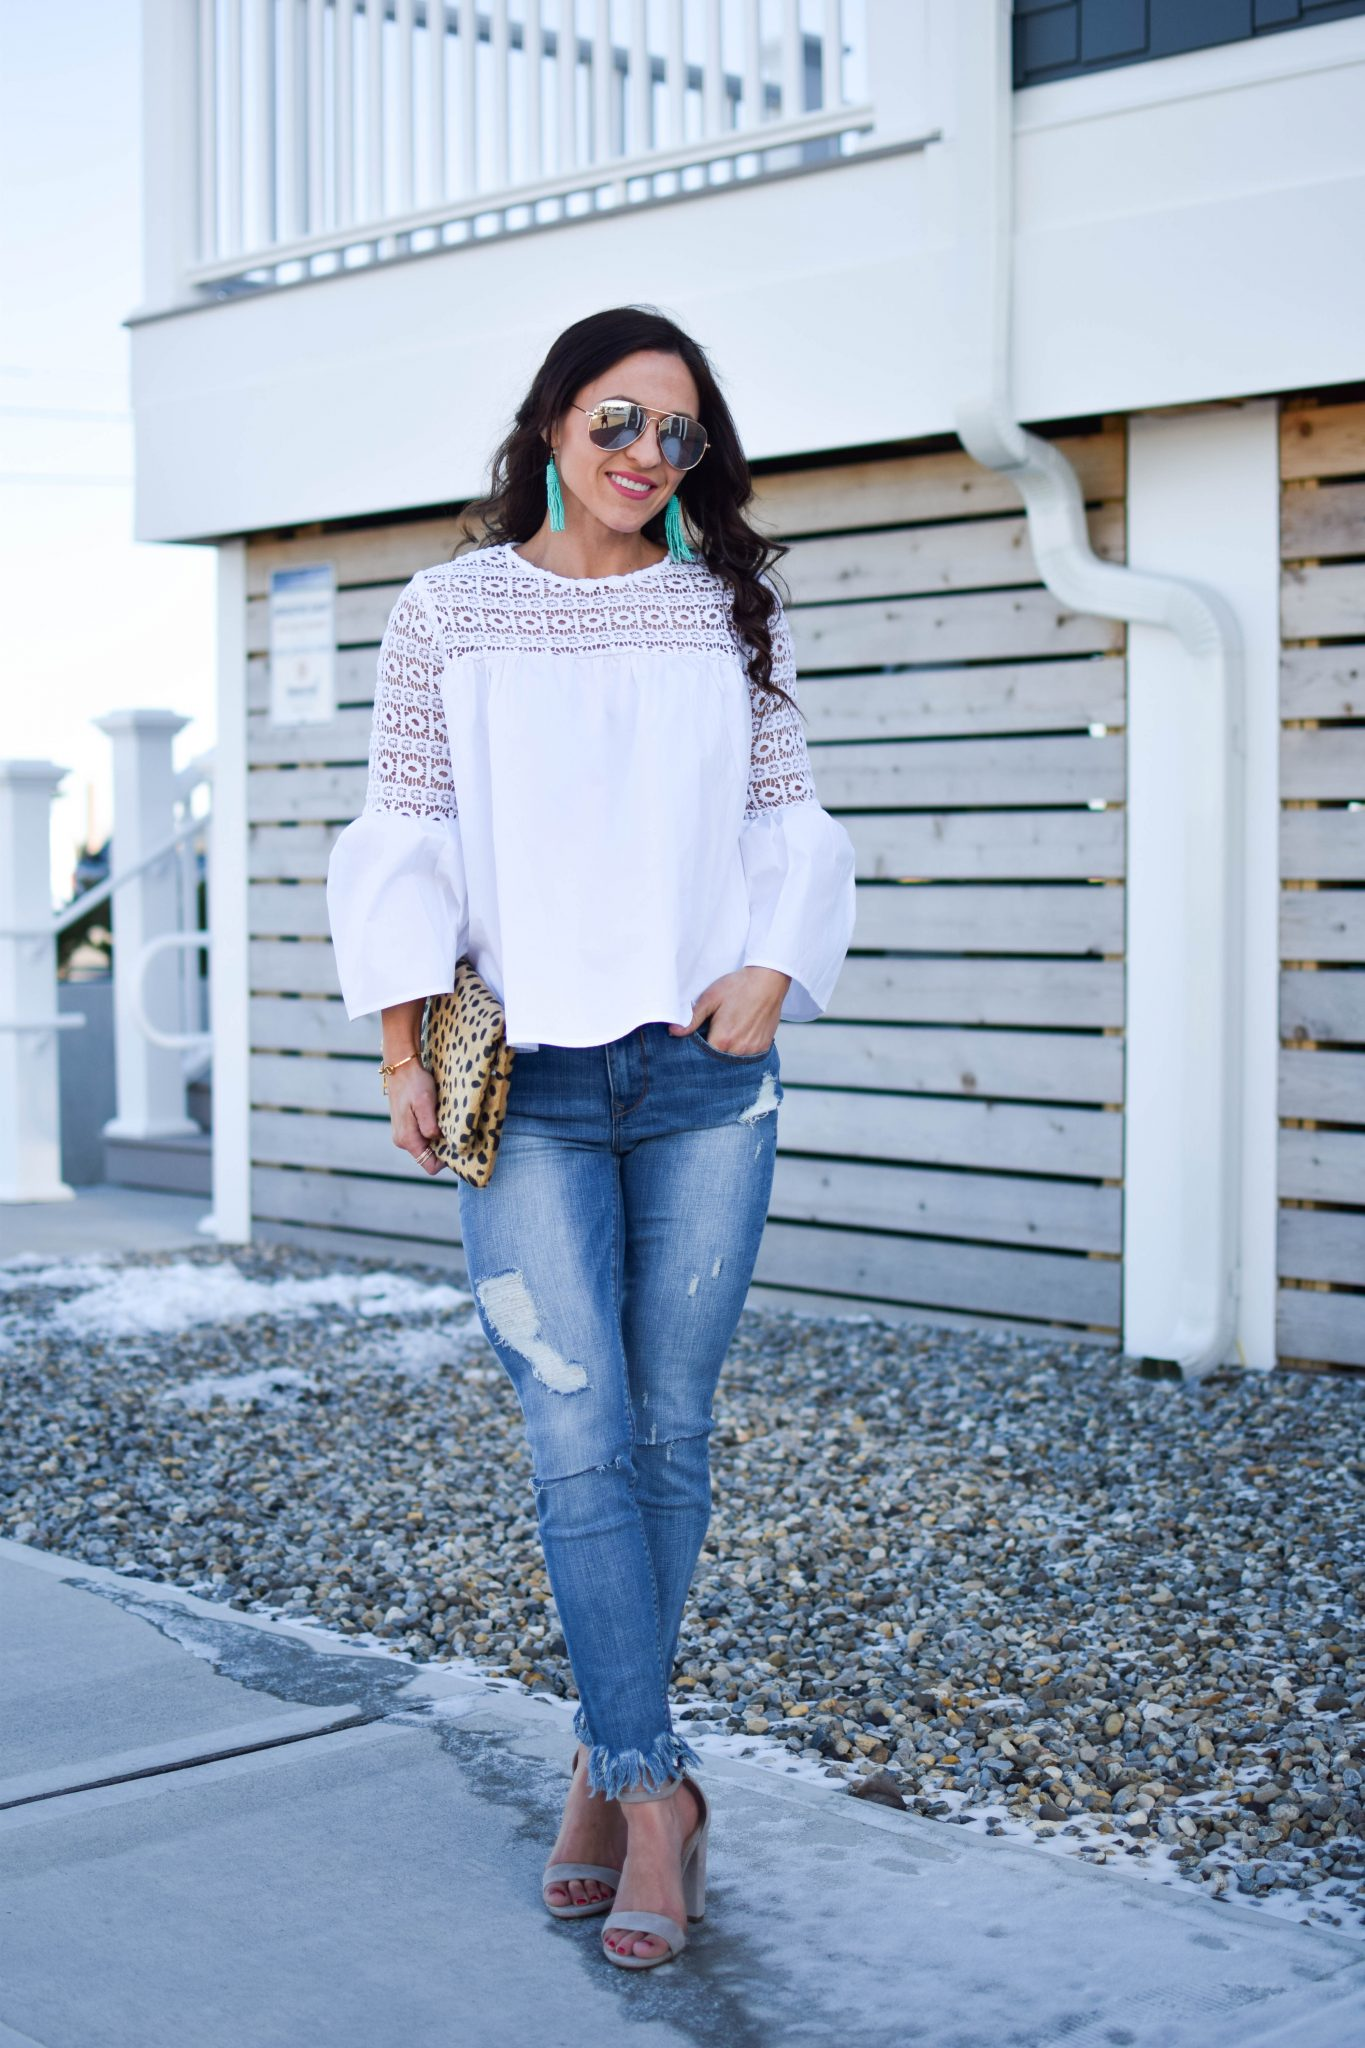 bell sleeve blouse - shopbop bell sleeve blouse by popular New Jersey fashion blogger Fit Mommy in Heels